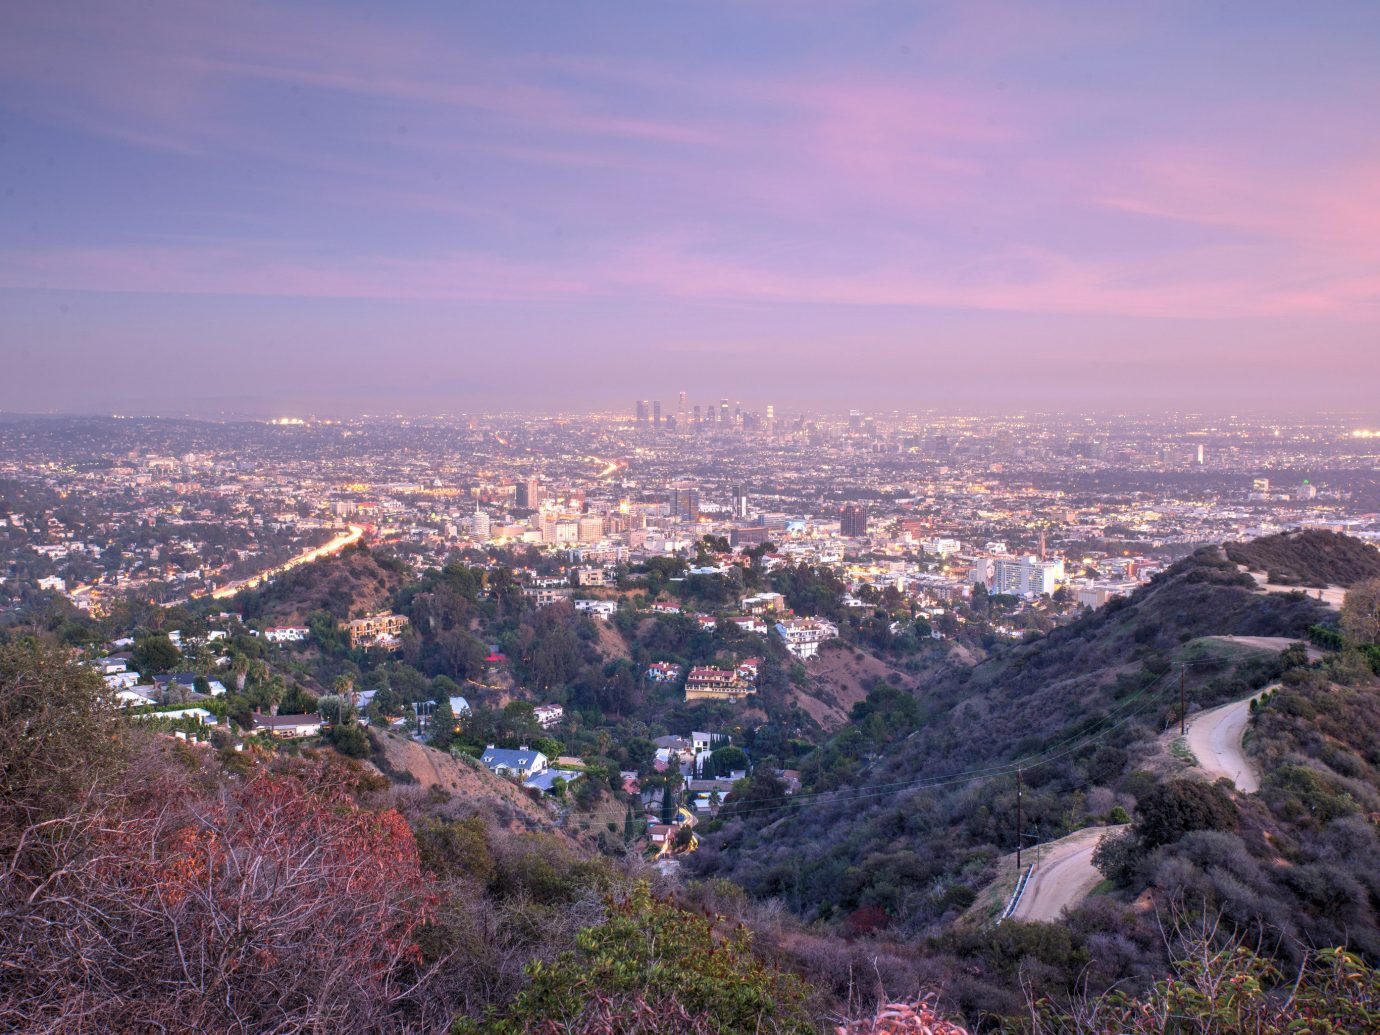 Budget outdoor sky Nature mountainous landforms geographical feature valley mountain horizon City human settlement hill aerial photography canyon morning skyline cityscape evening landscape dusk Sunset dawn panorama overlooking hillside